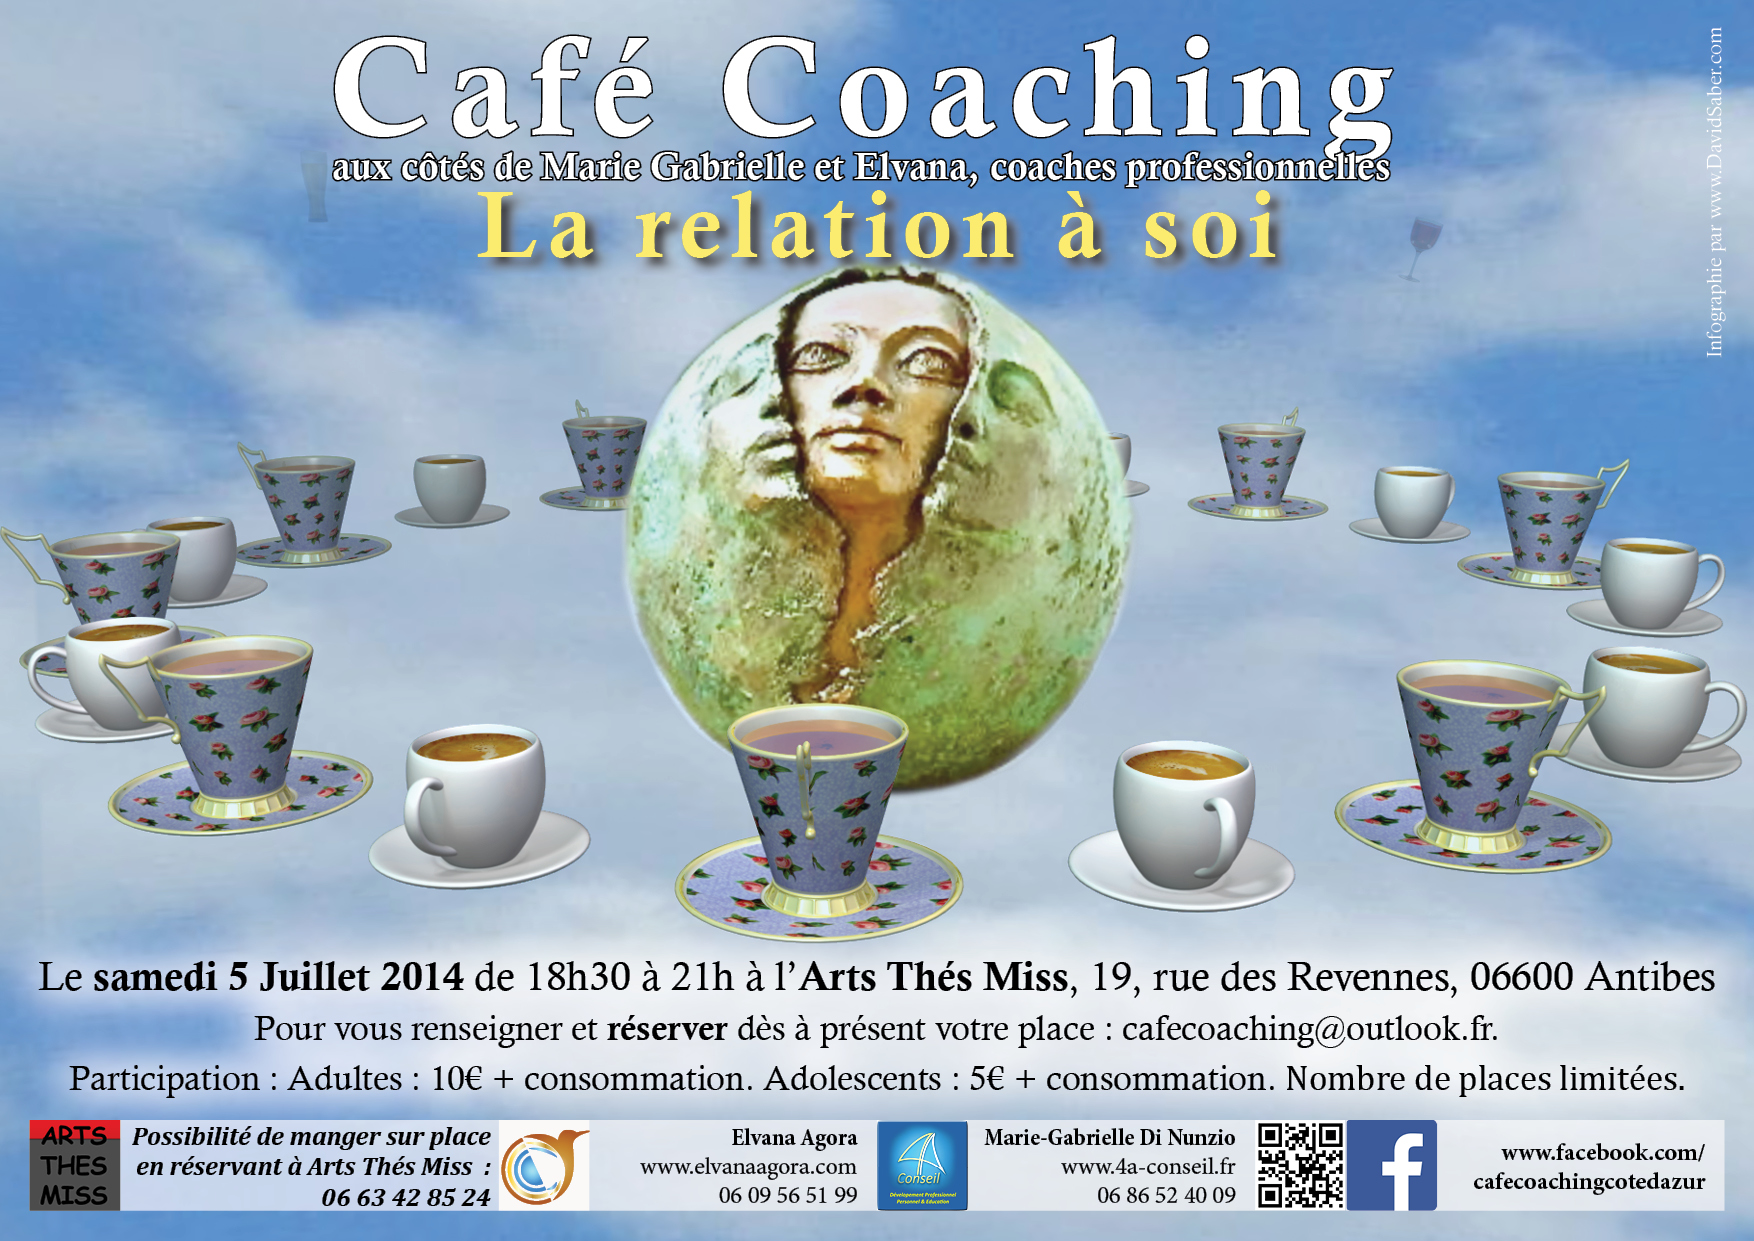 CafeCoaching_AfficheA4_140705Relation_SansDebords